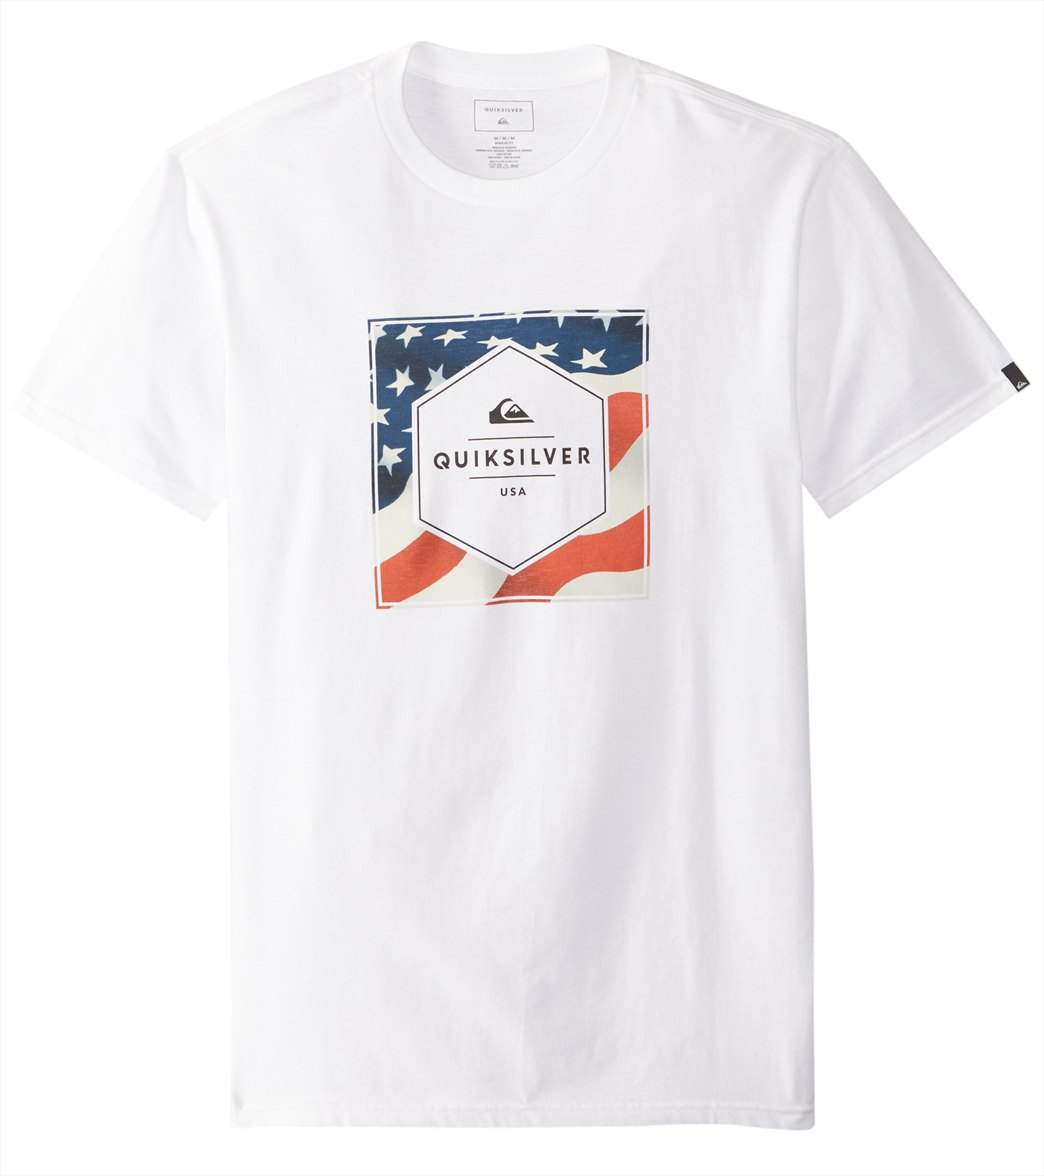 355977edf9 Quiksilver Men's Stars and Stripes Short Sleeve Tee at SwimOutlet.com